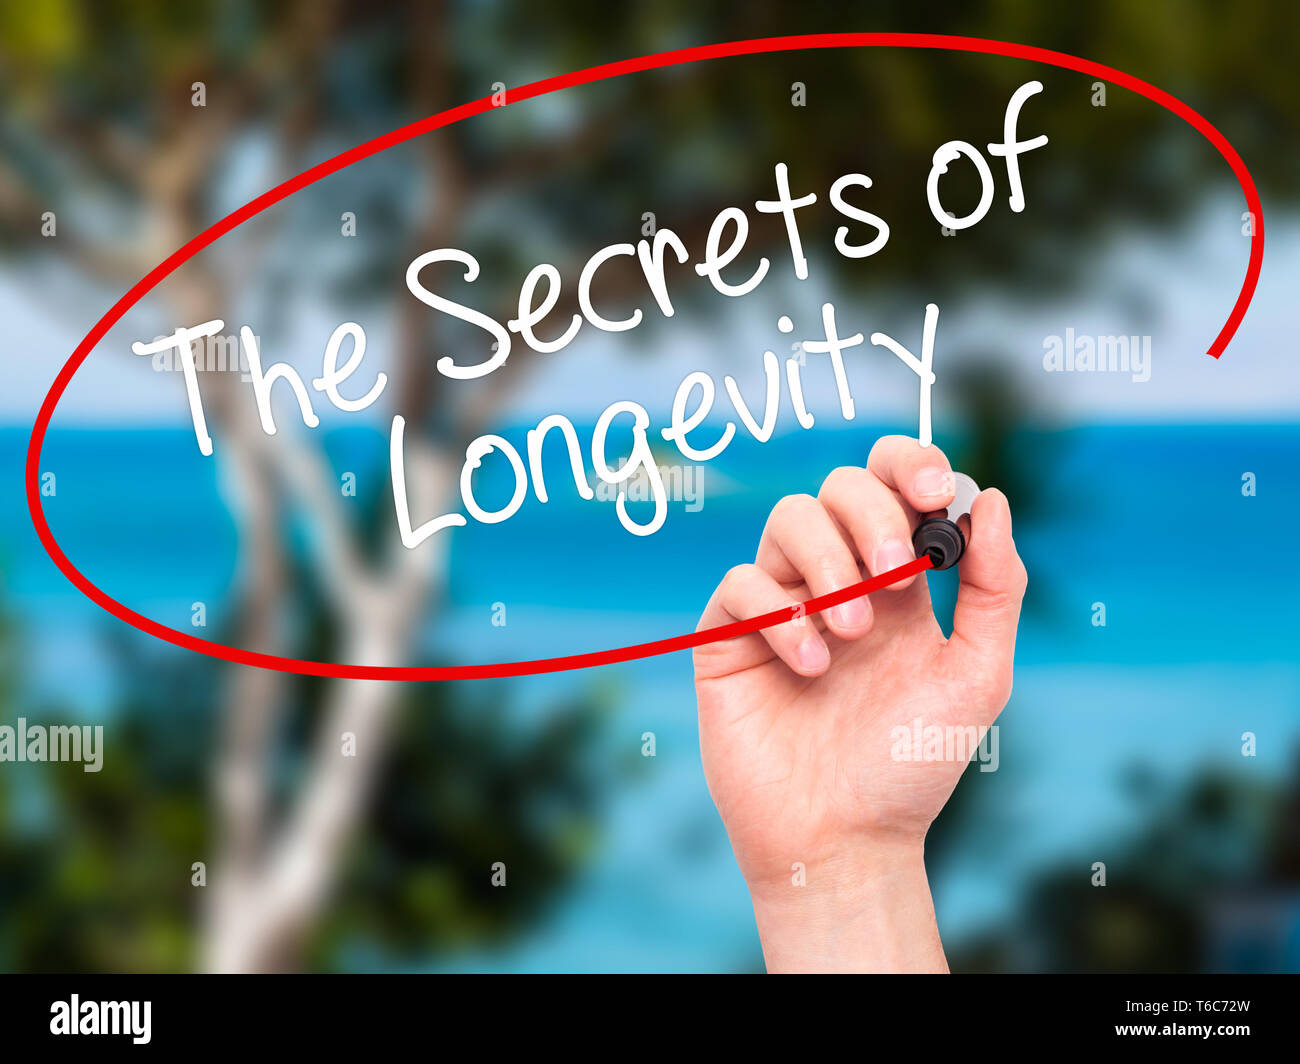 Man Hand writing The Secrets of Longevity with black marker on visual screen - Stock Image